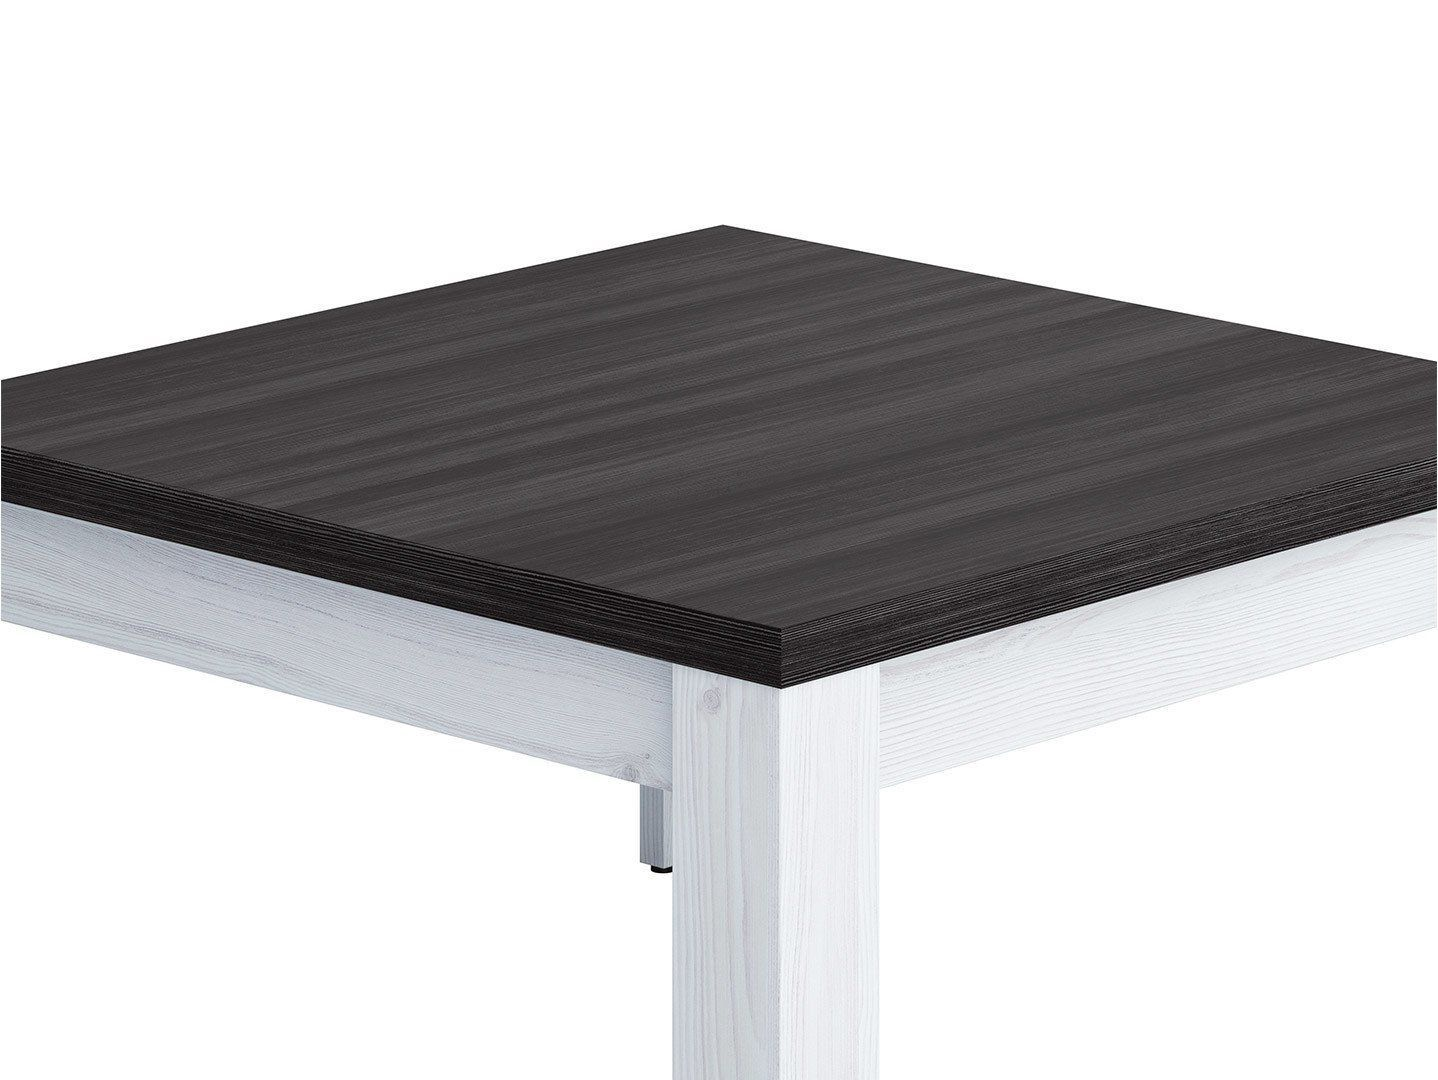 Black And White Coffee Table.Black Red White Antwerpwn Coffee Table Larch